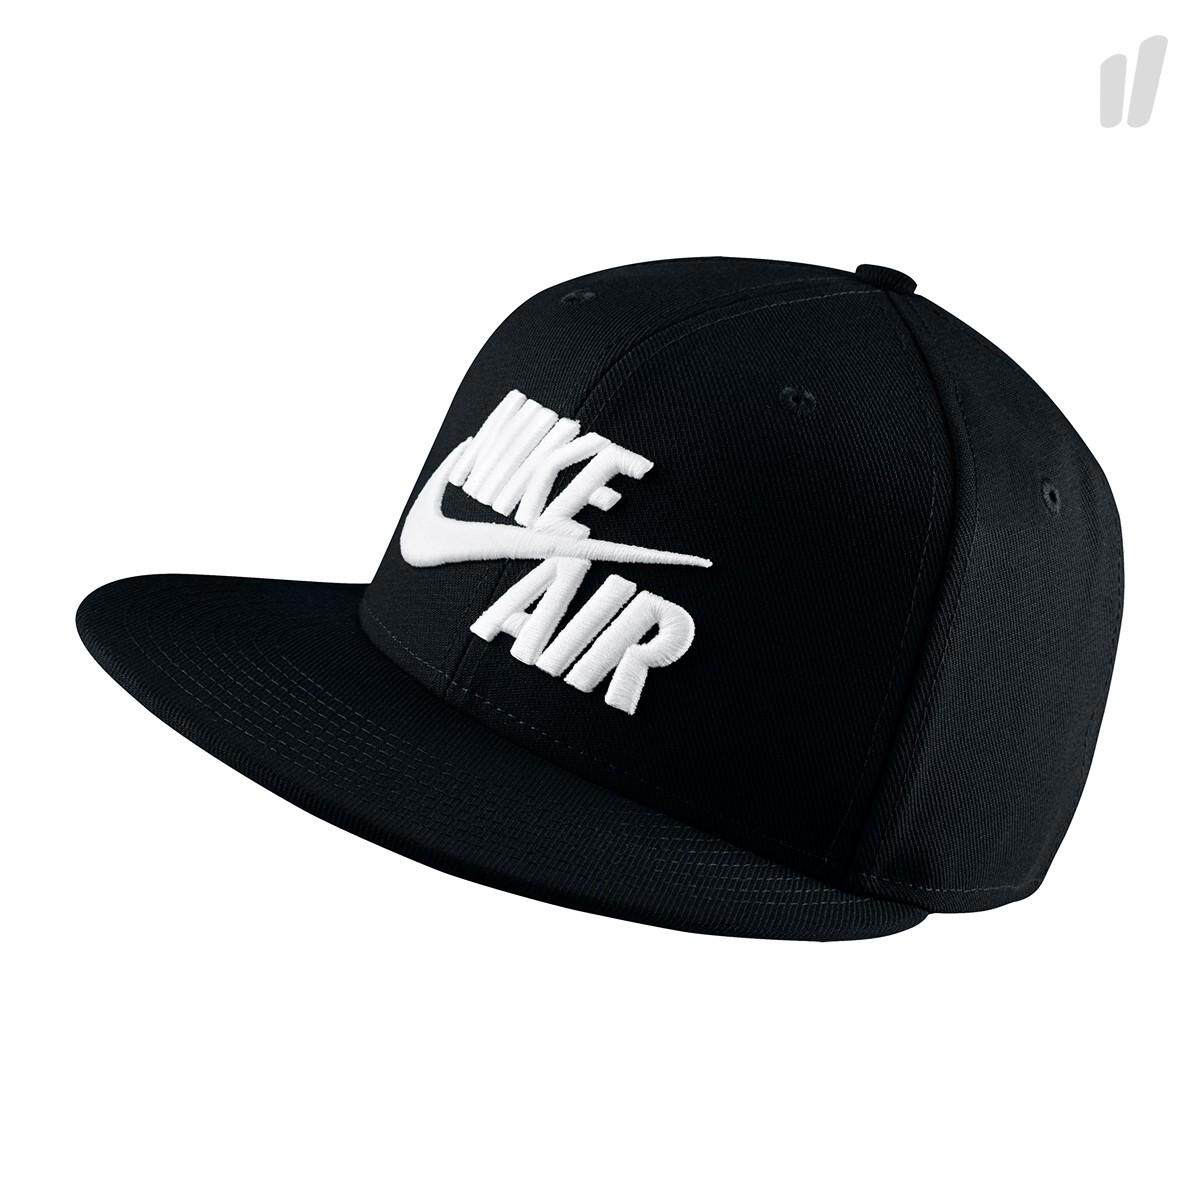 c7b4b4ecb66 Nike Men s Hats price in Malaysia - Best Nike Men s Hats